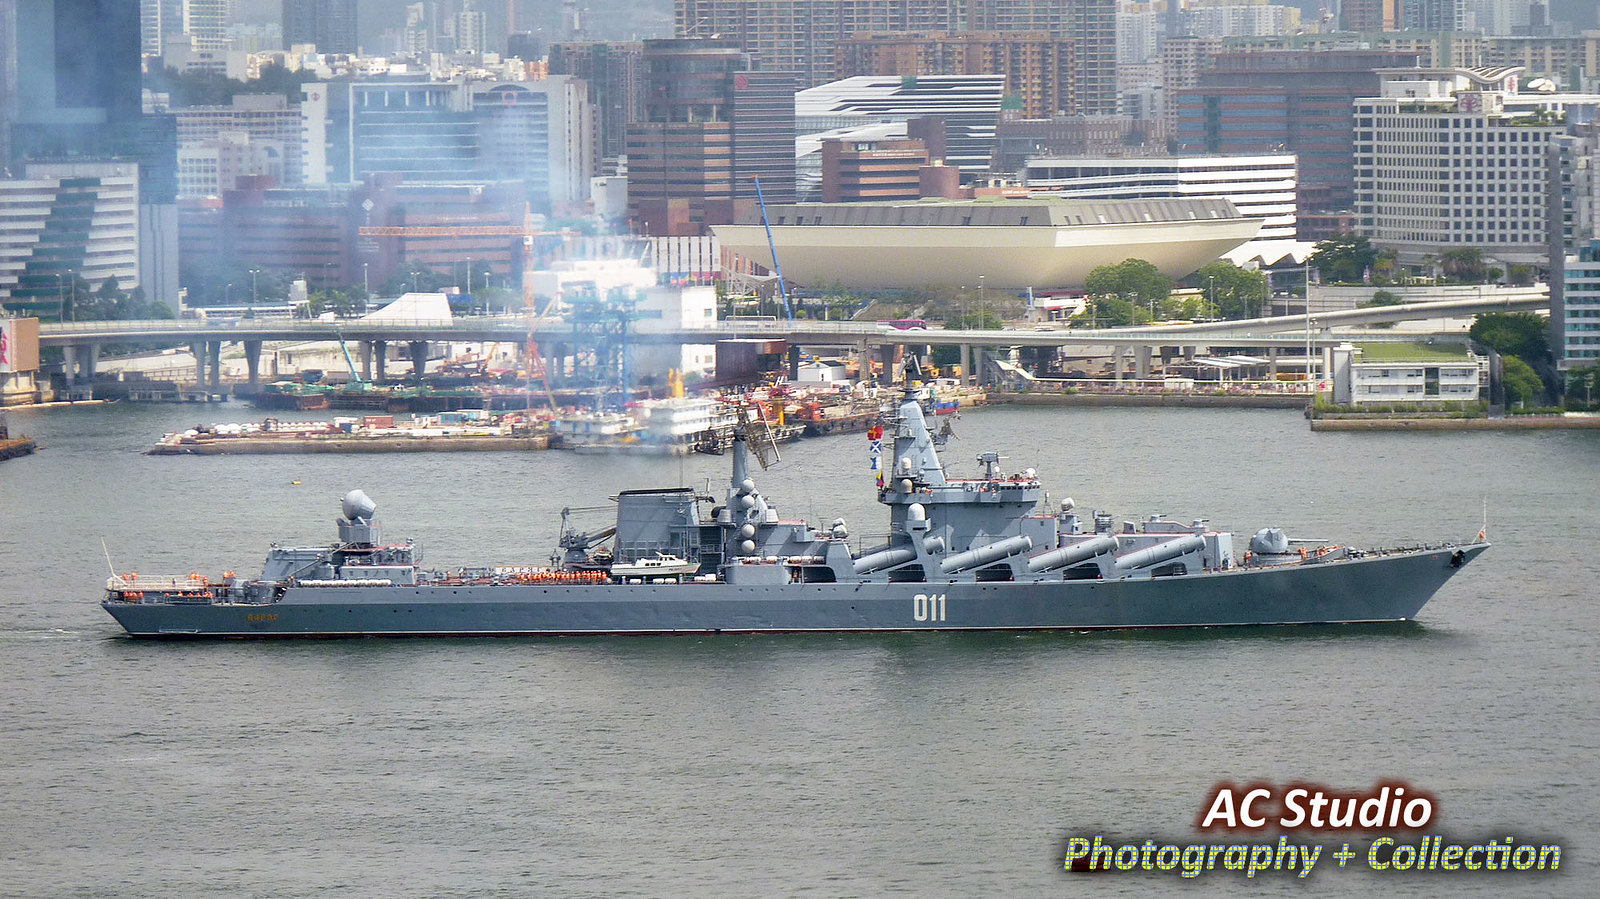 Russian Navy - Marine Russe - Page 18 35074287460_790ee7adca_h